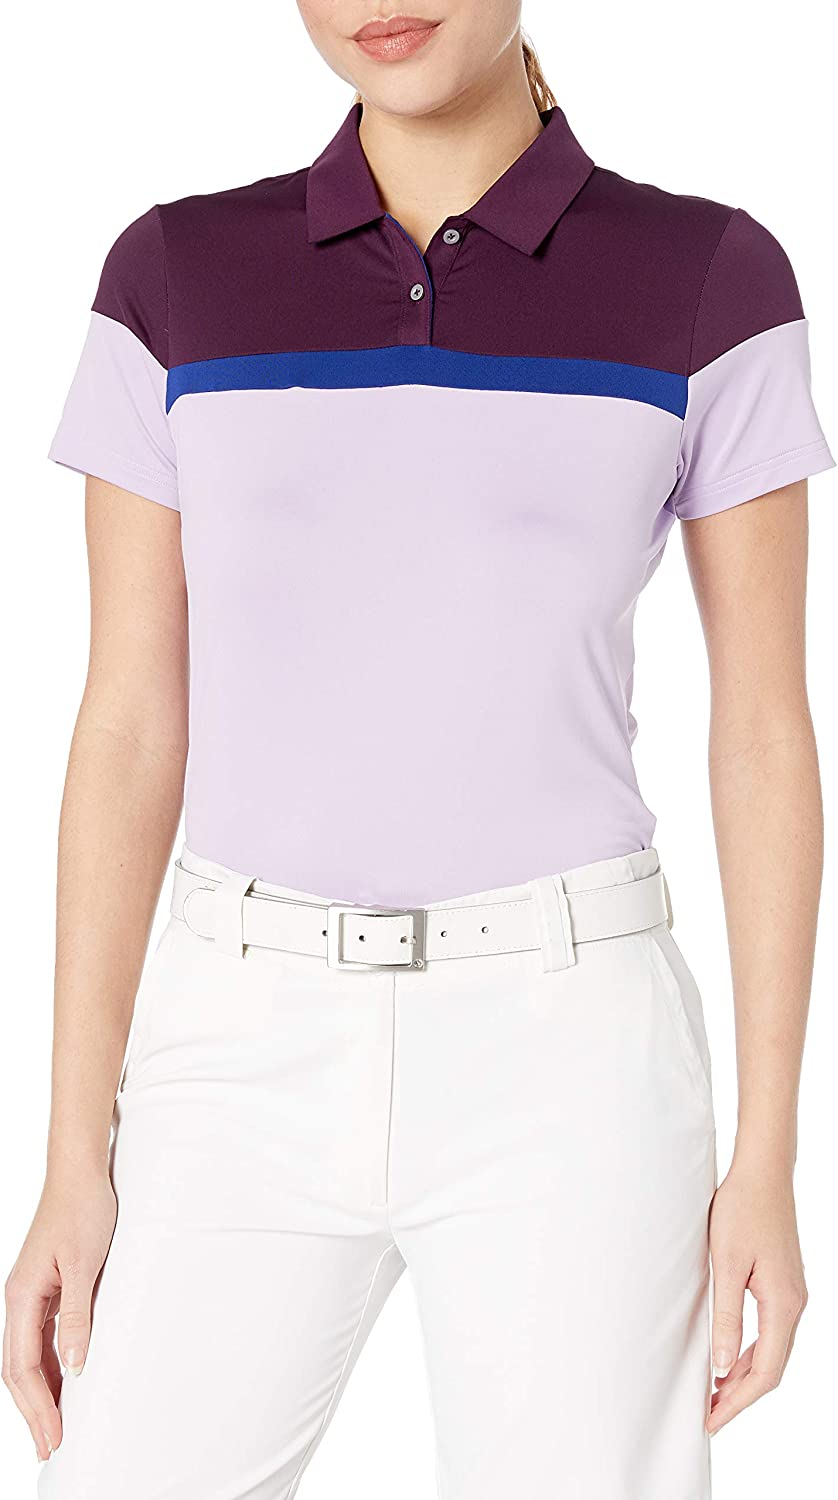 adidas Golf Mujer Color Bloqueado Polo de Manga Corta: Amazon.es ...